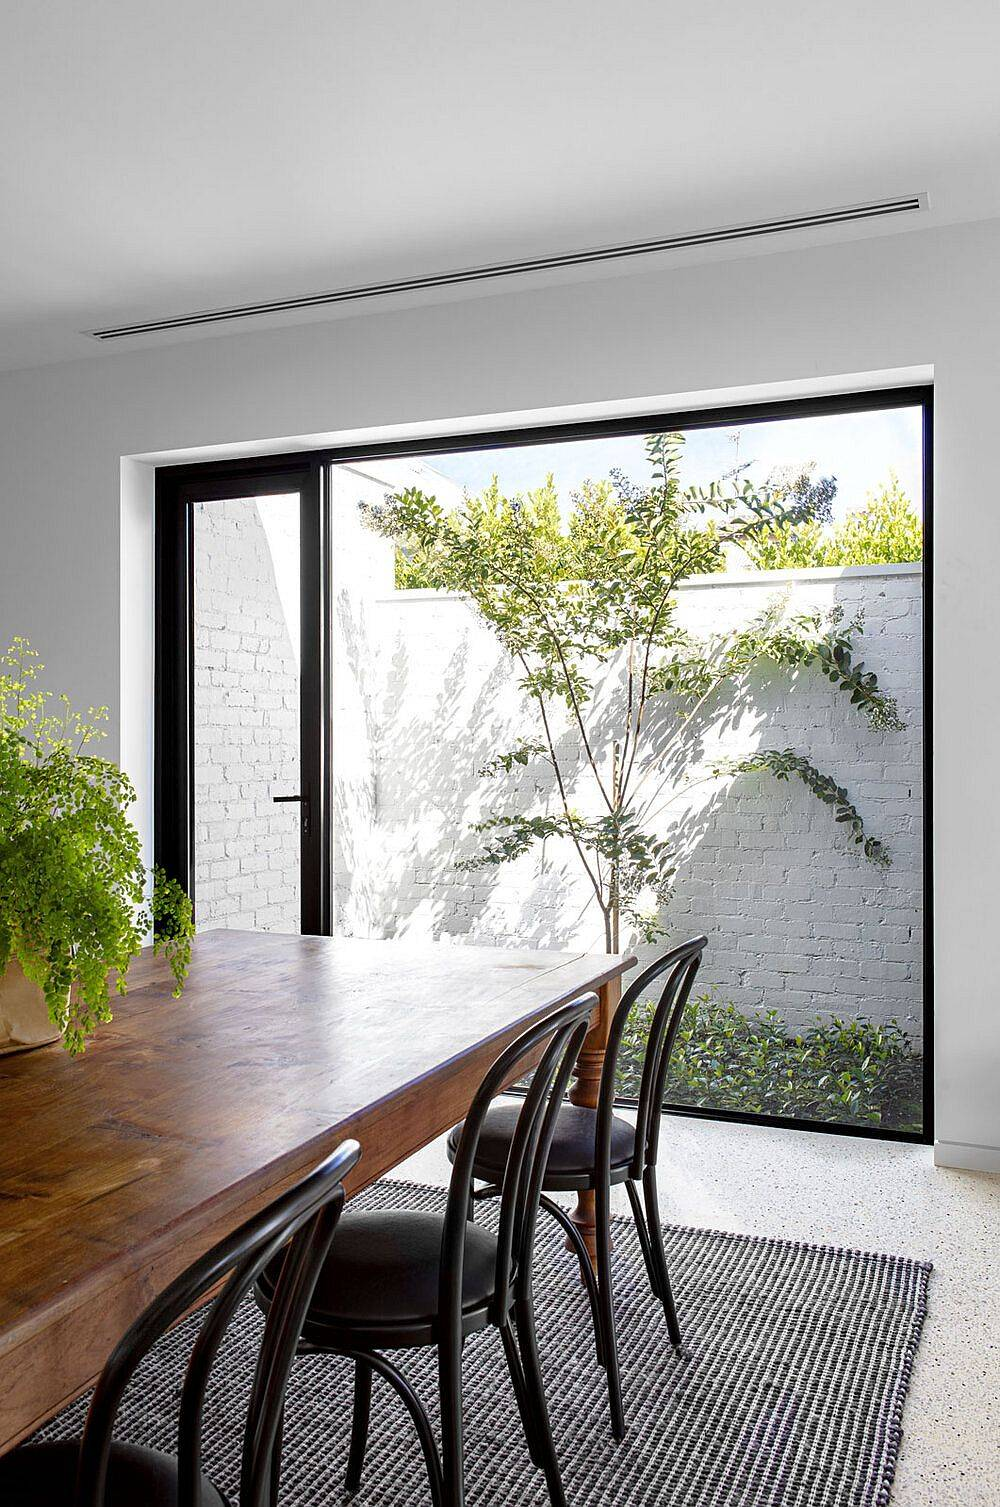 Picture window adds greenery and light to the dining area along with the kitchen